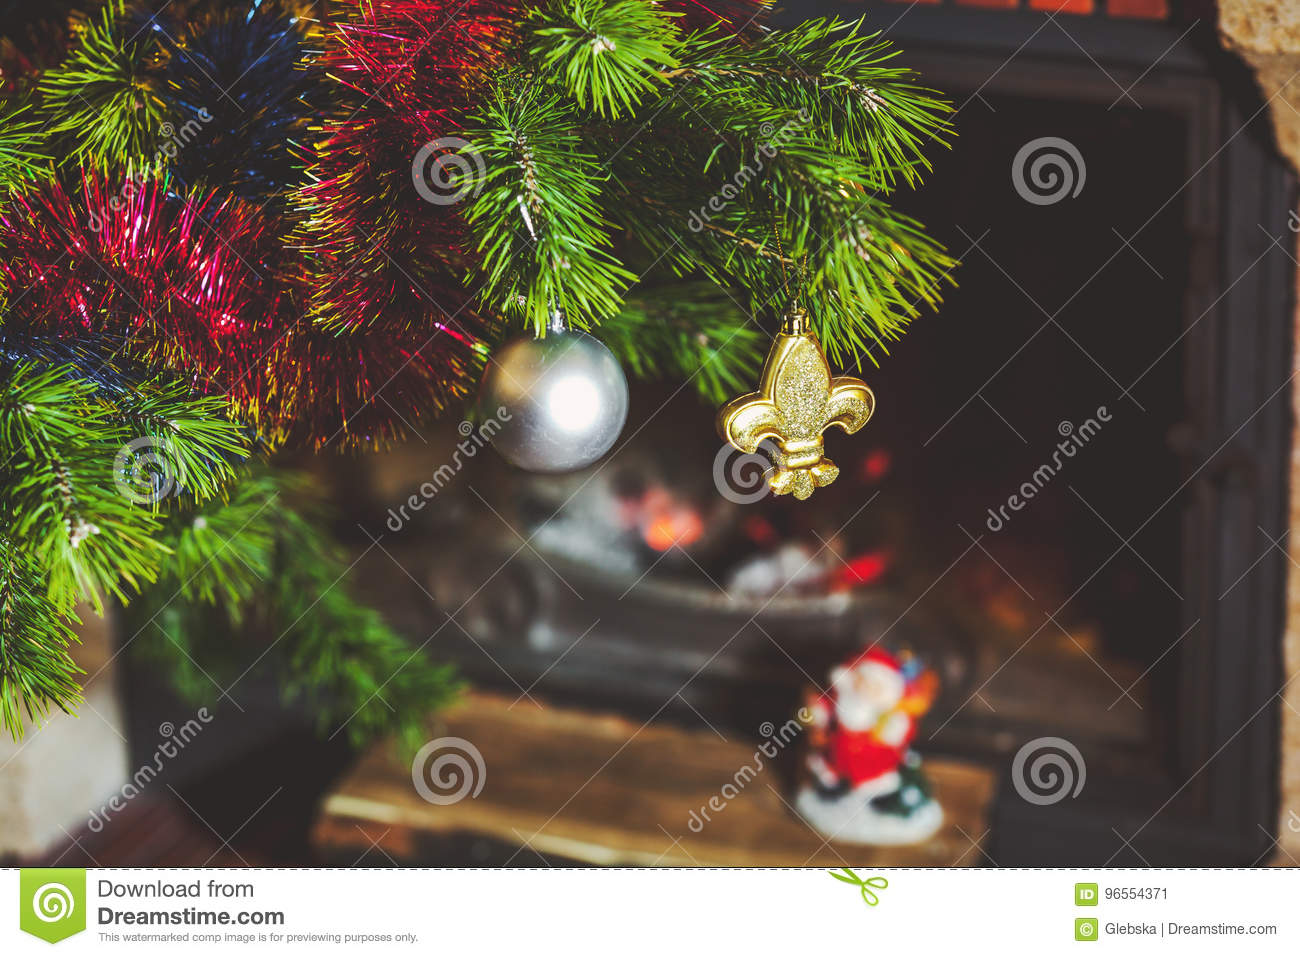 download christmas tree stands in front of fireplace with burning firewood stock image image of - Decorative Christmas Tree Stands